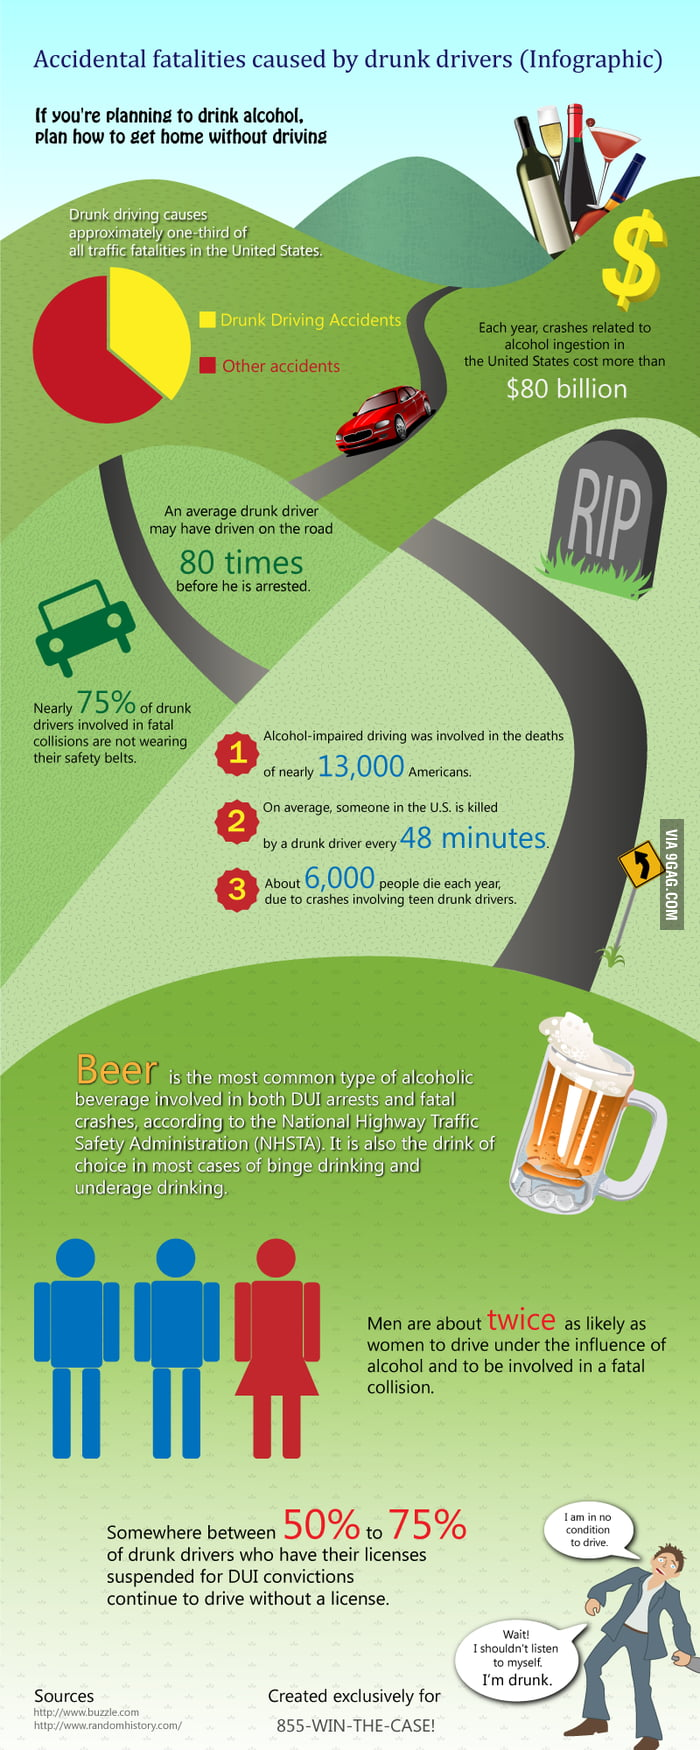 an examination of the account of driving under the influence of alcohol arrest in a video